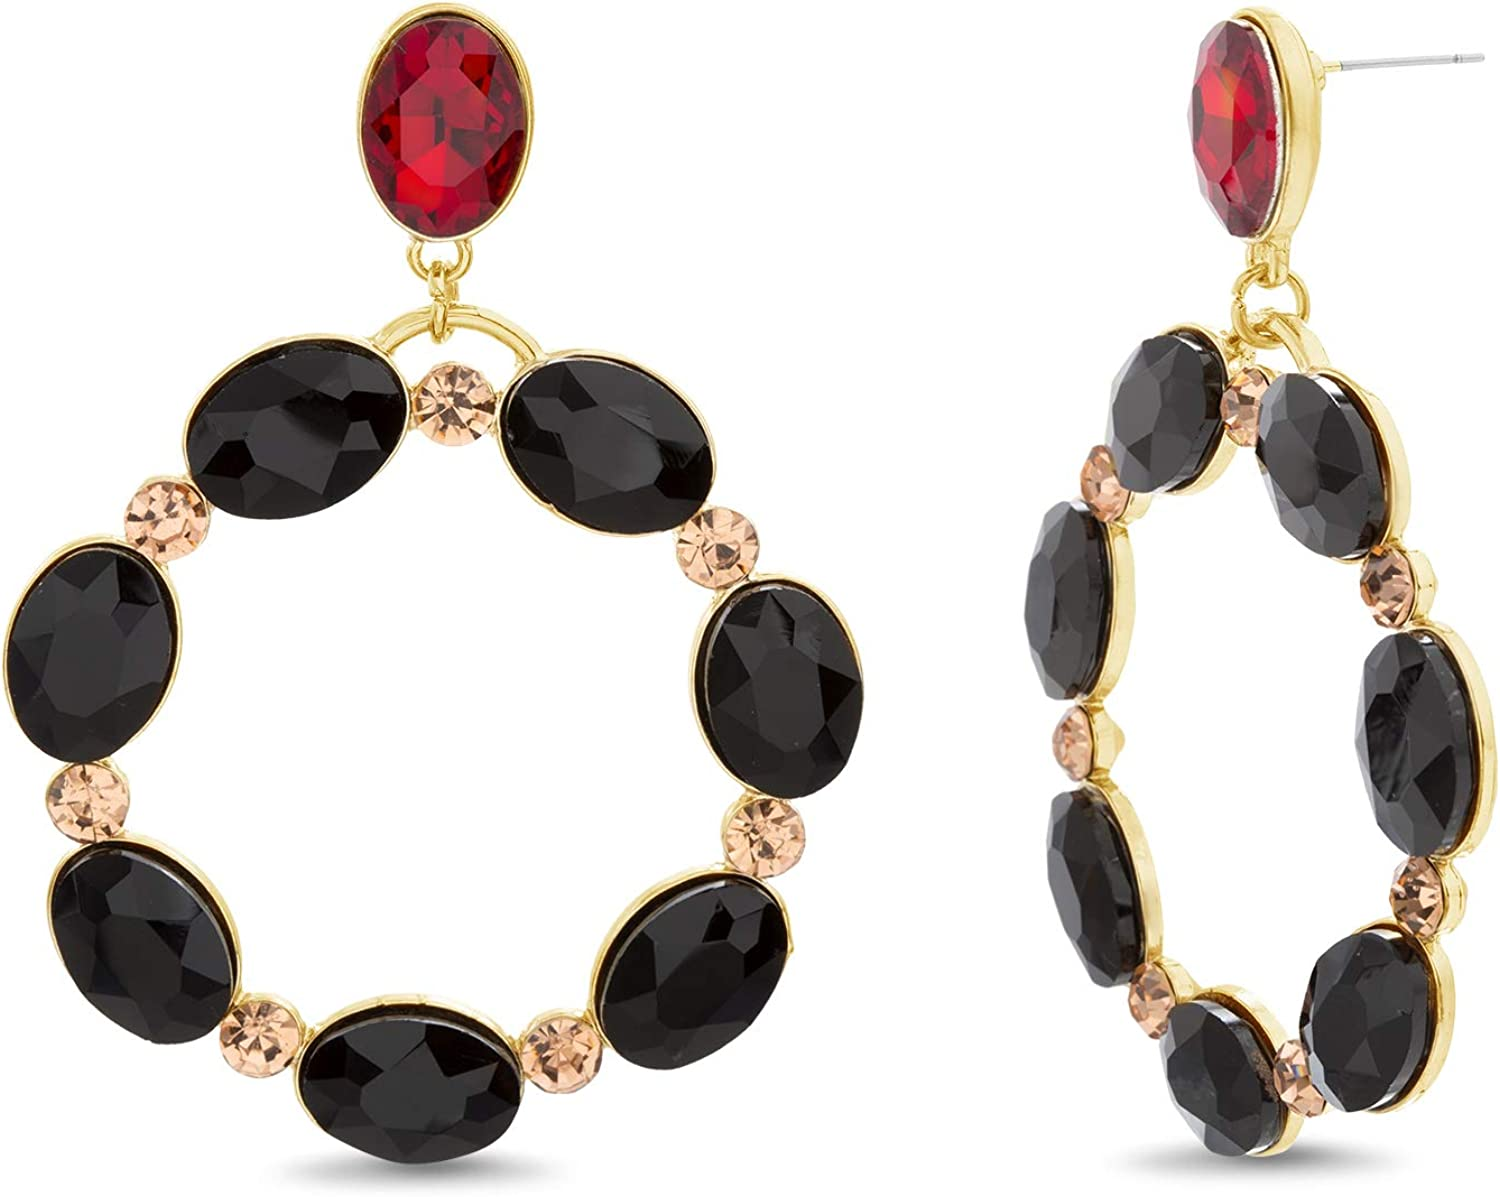 Steve Madden Yellow Gold Tone with Black and Red Rhinestone Open Circle Drop Earrings For Women